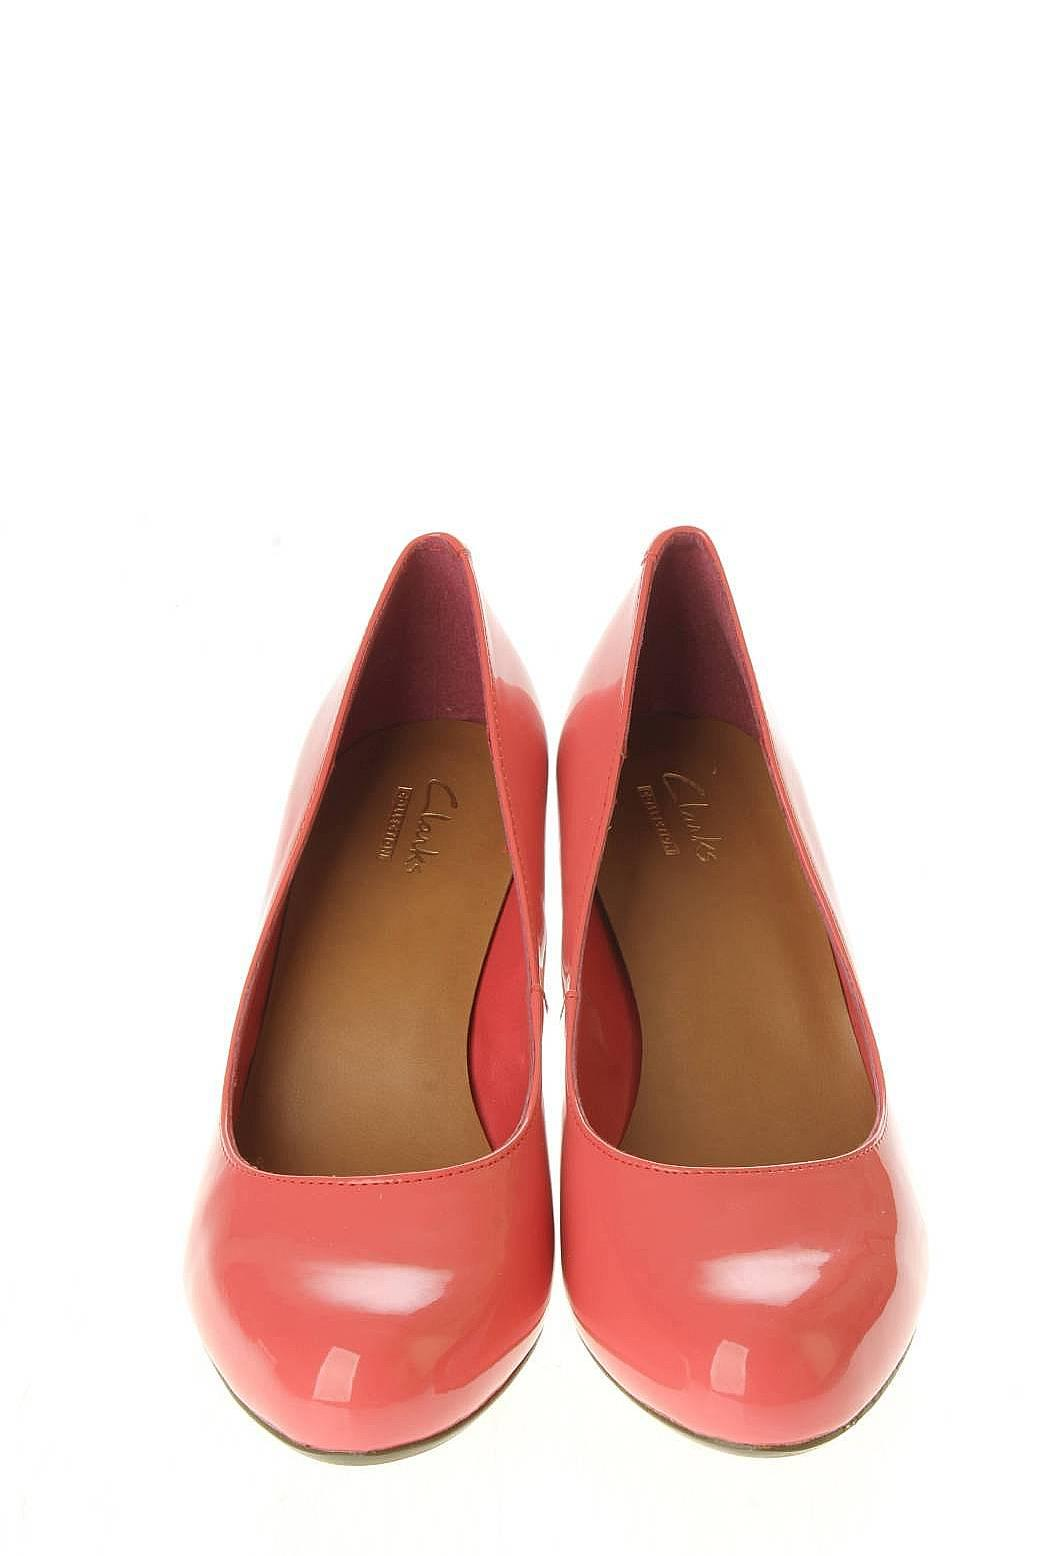 Обувь Clarks                                                                                                              red color